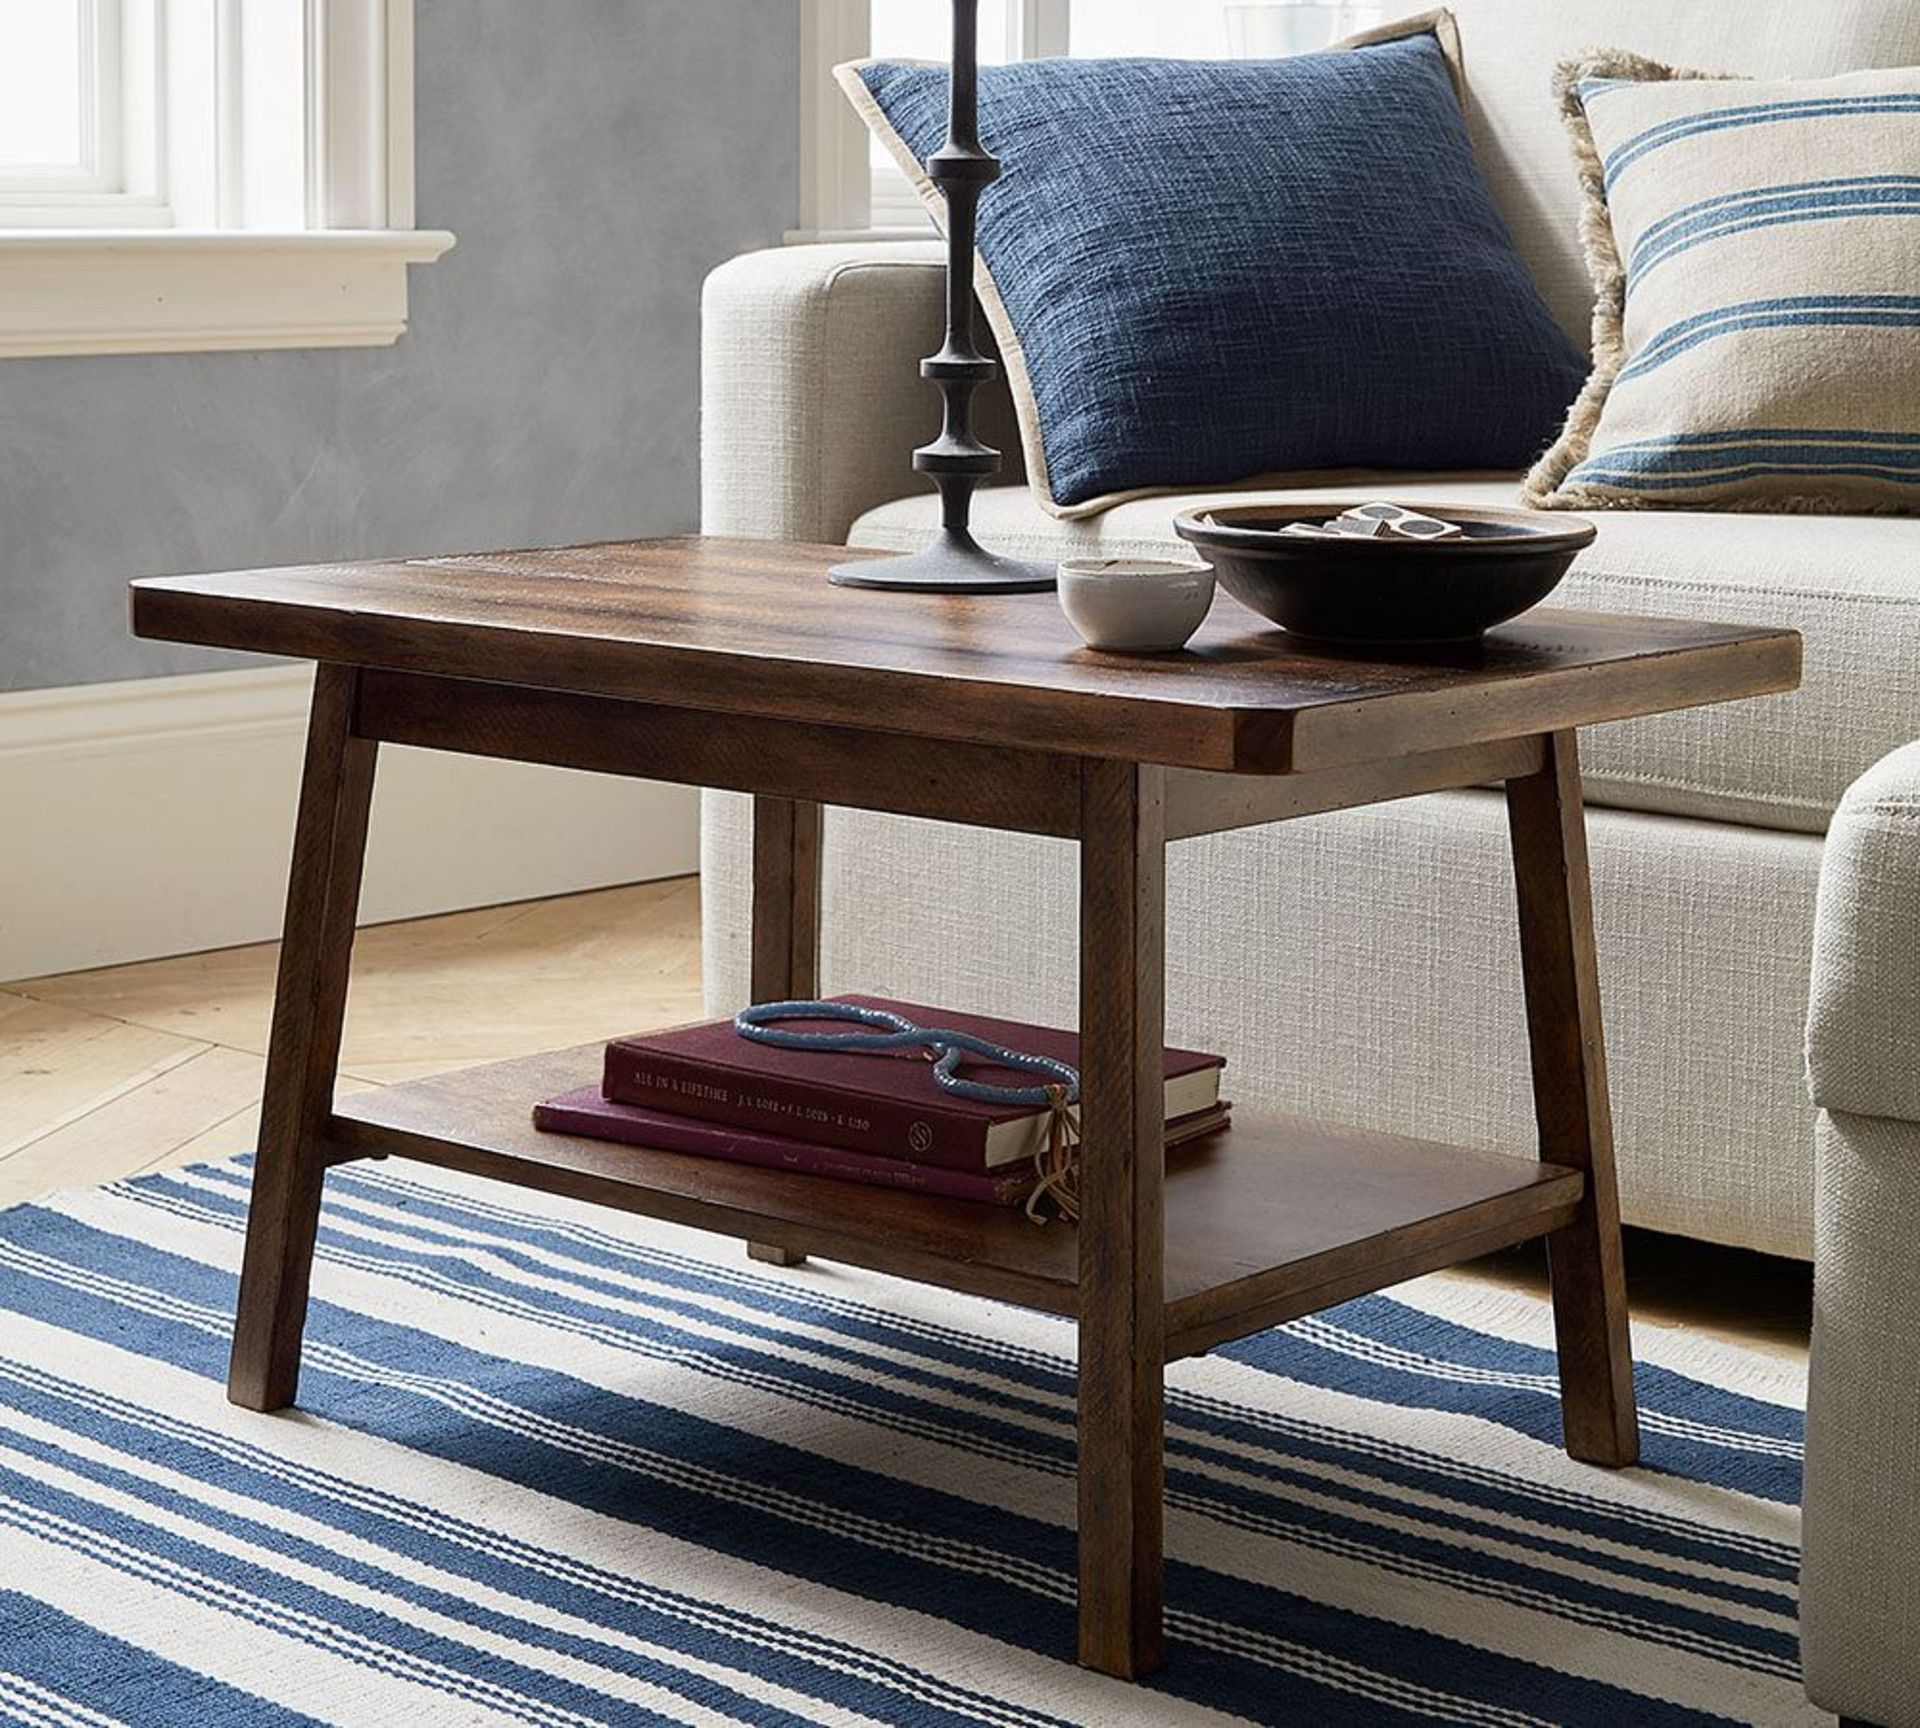 Mateo Coffee Table Coffee Table Coffee Table Decor Tray Wood Lift Top Coffee Table [ 1728 x 1920 Pixel ]